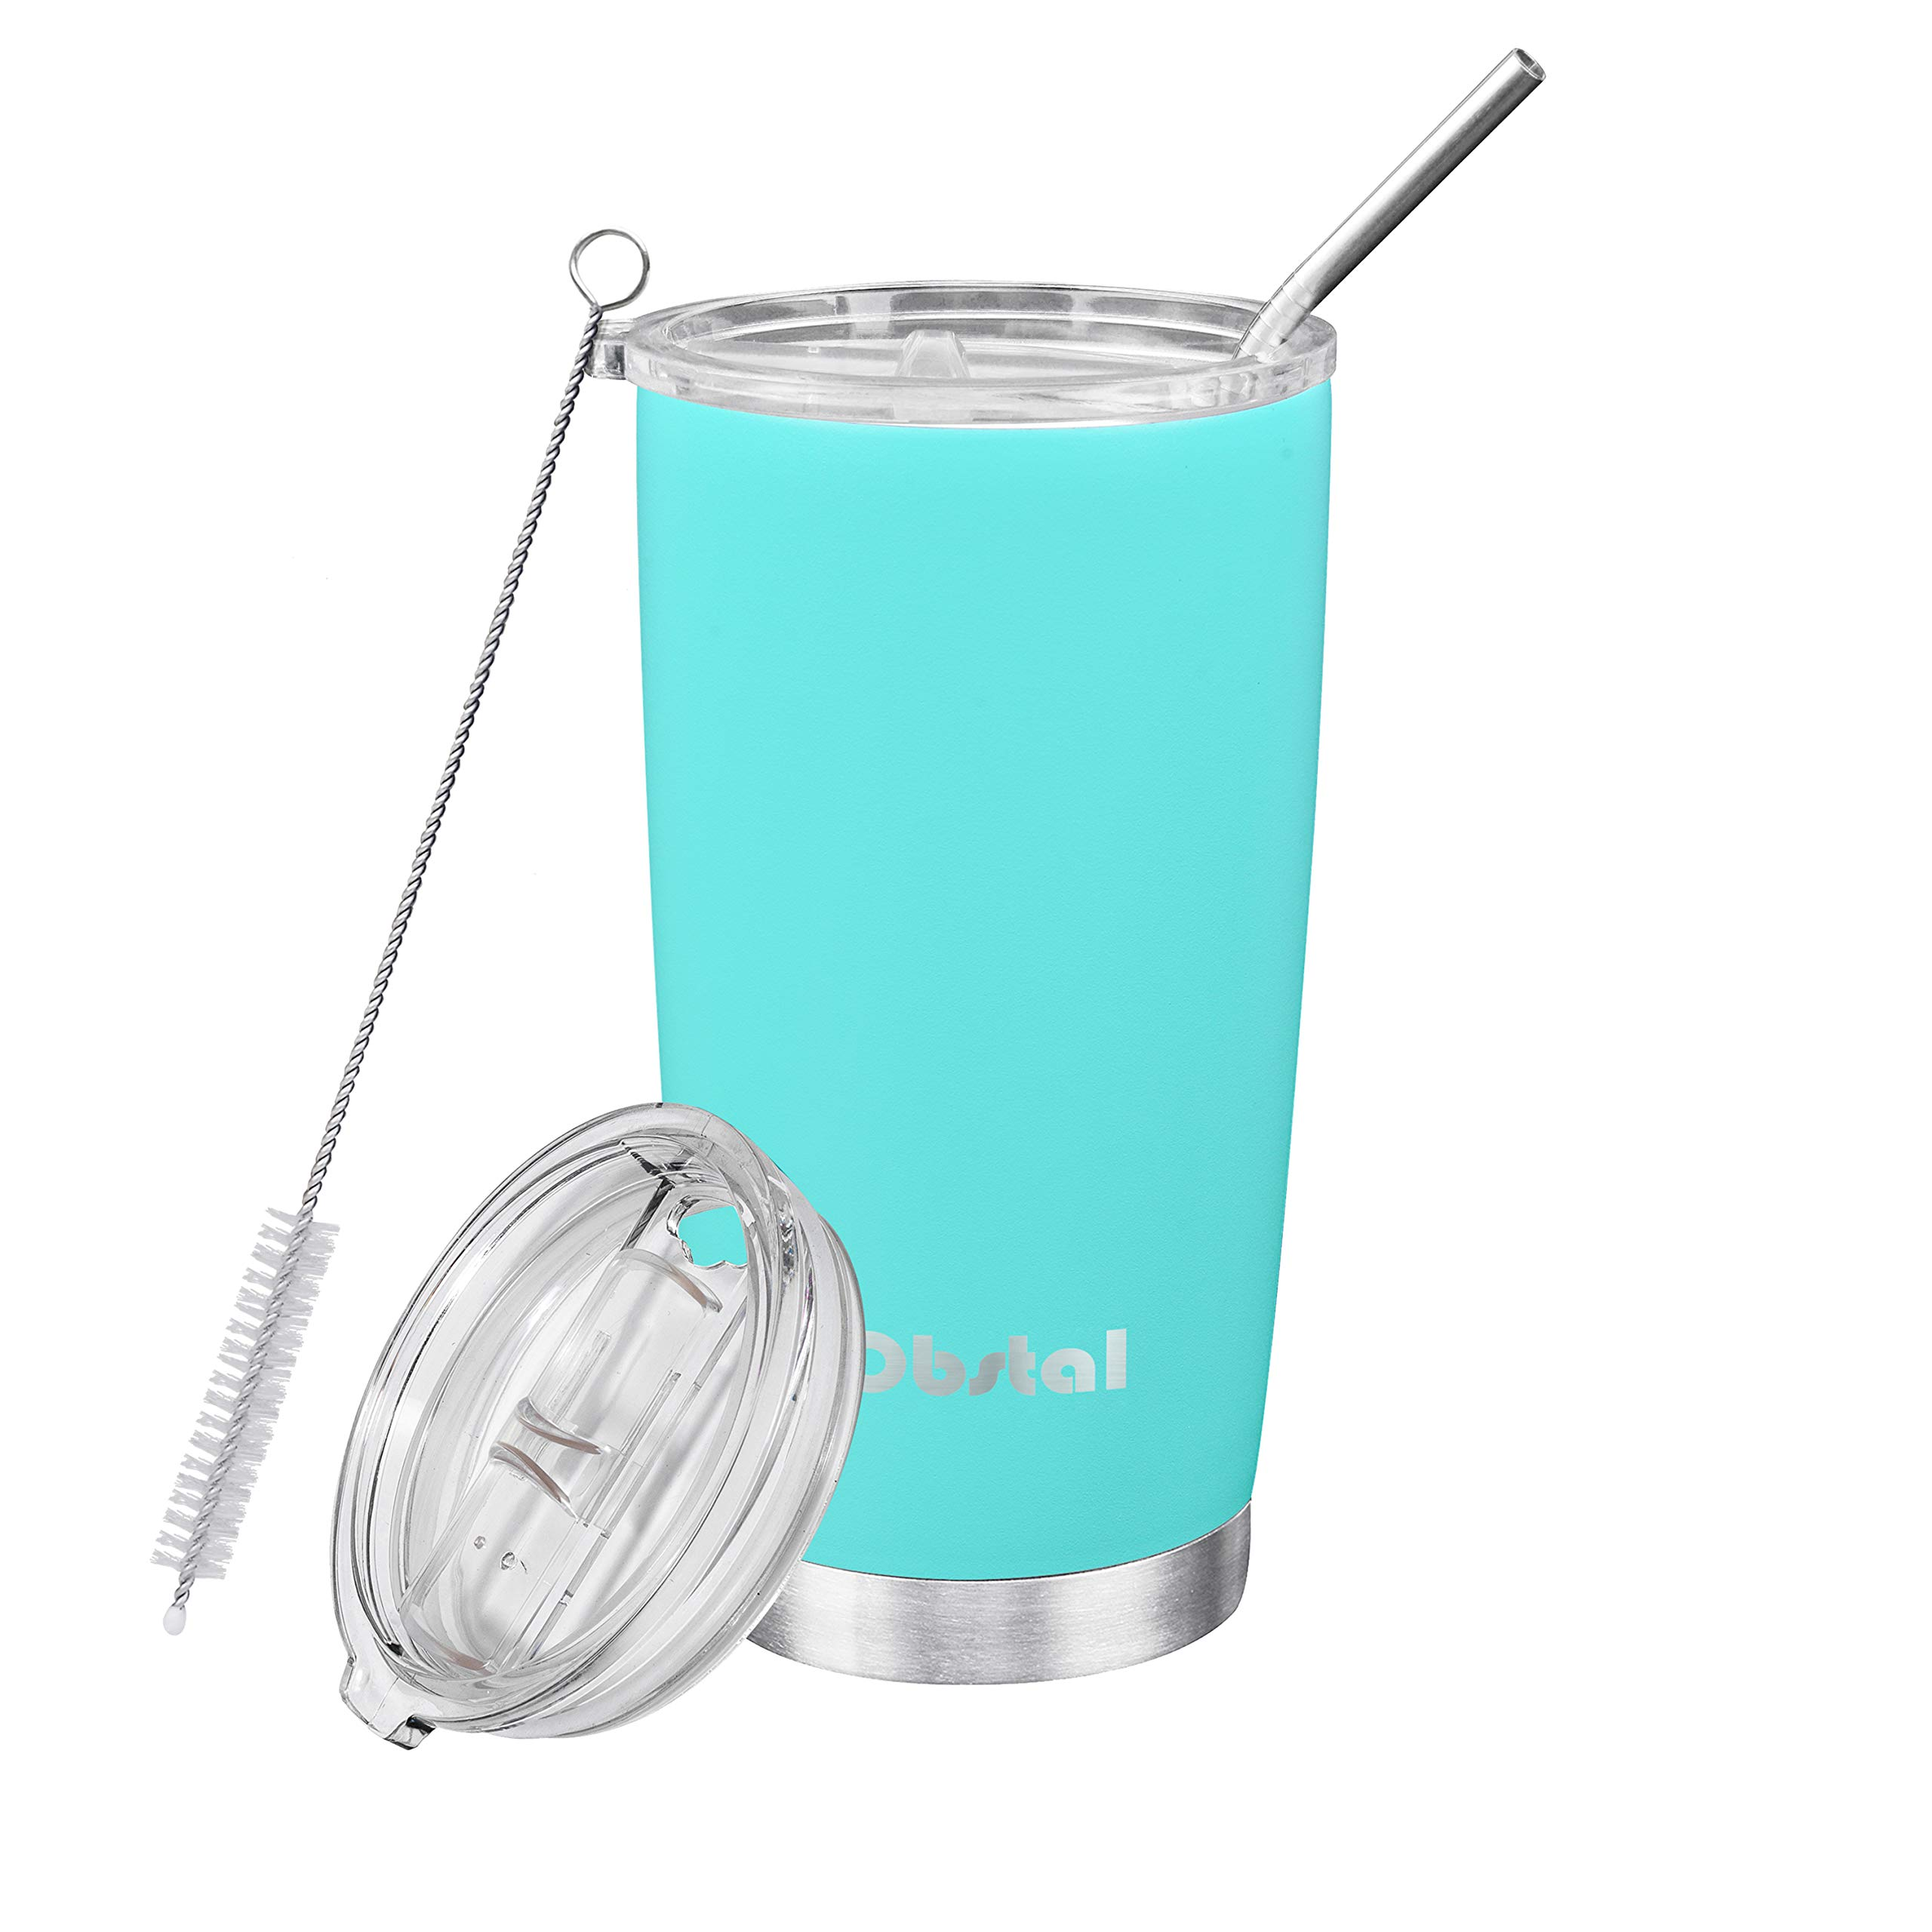 Obstal 20 oz Stainless Steel Tumbler for Coffee - Double Wall Vacuum Insulated Tumblers with Straw, 2 Lids and Cleaning Brush, Aqua Blue, Powder Coated